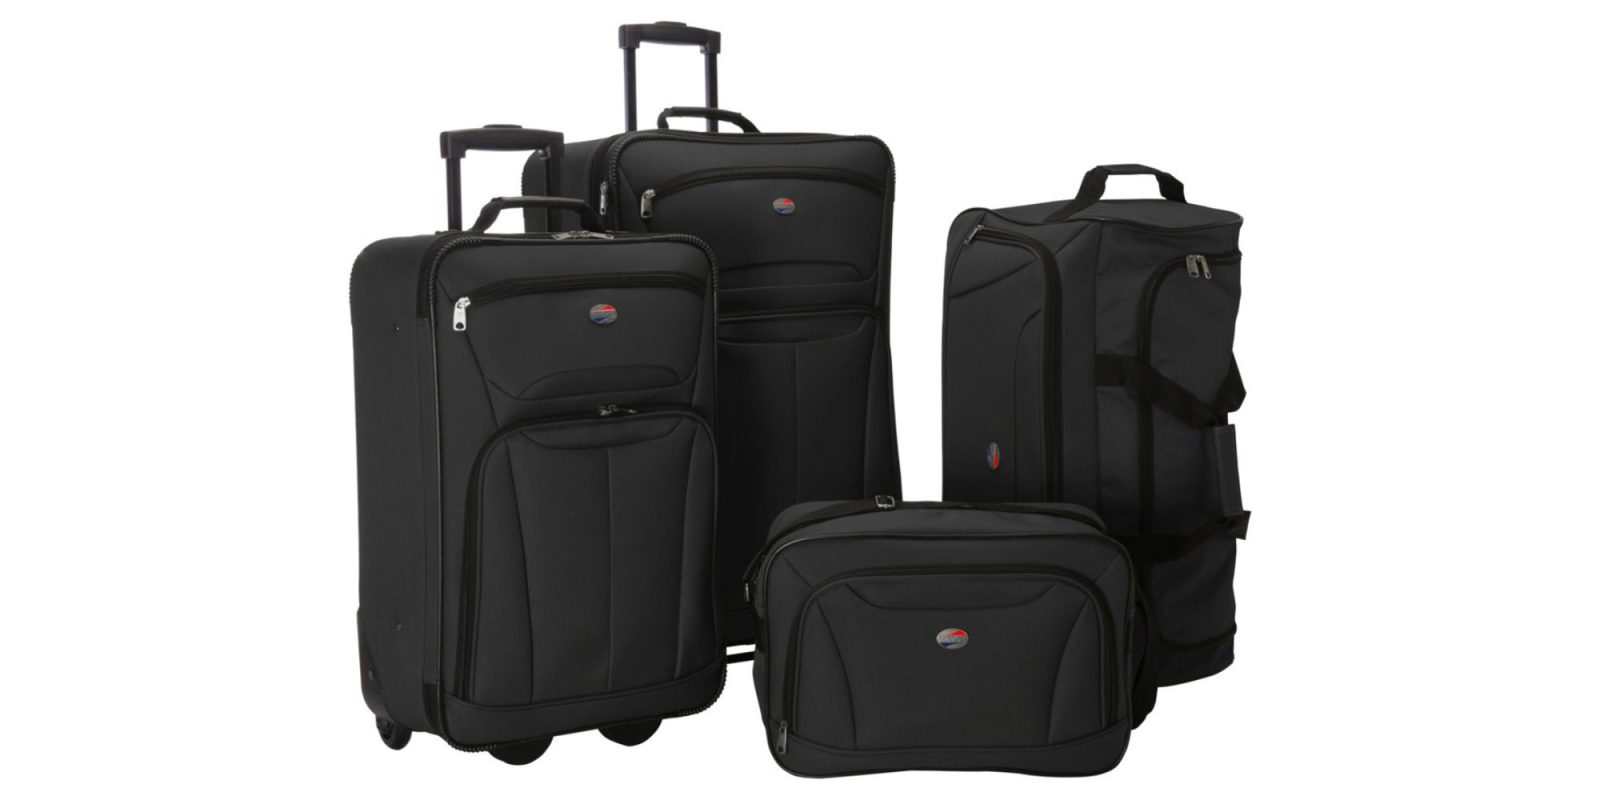 Prep for travels with American Tourister's 4-pc. Luggage Set: $56 (2019 low)